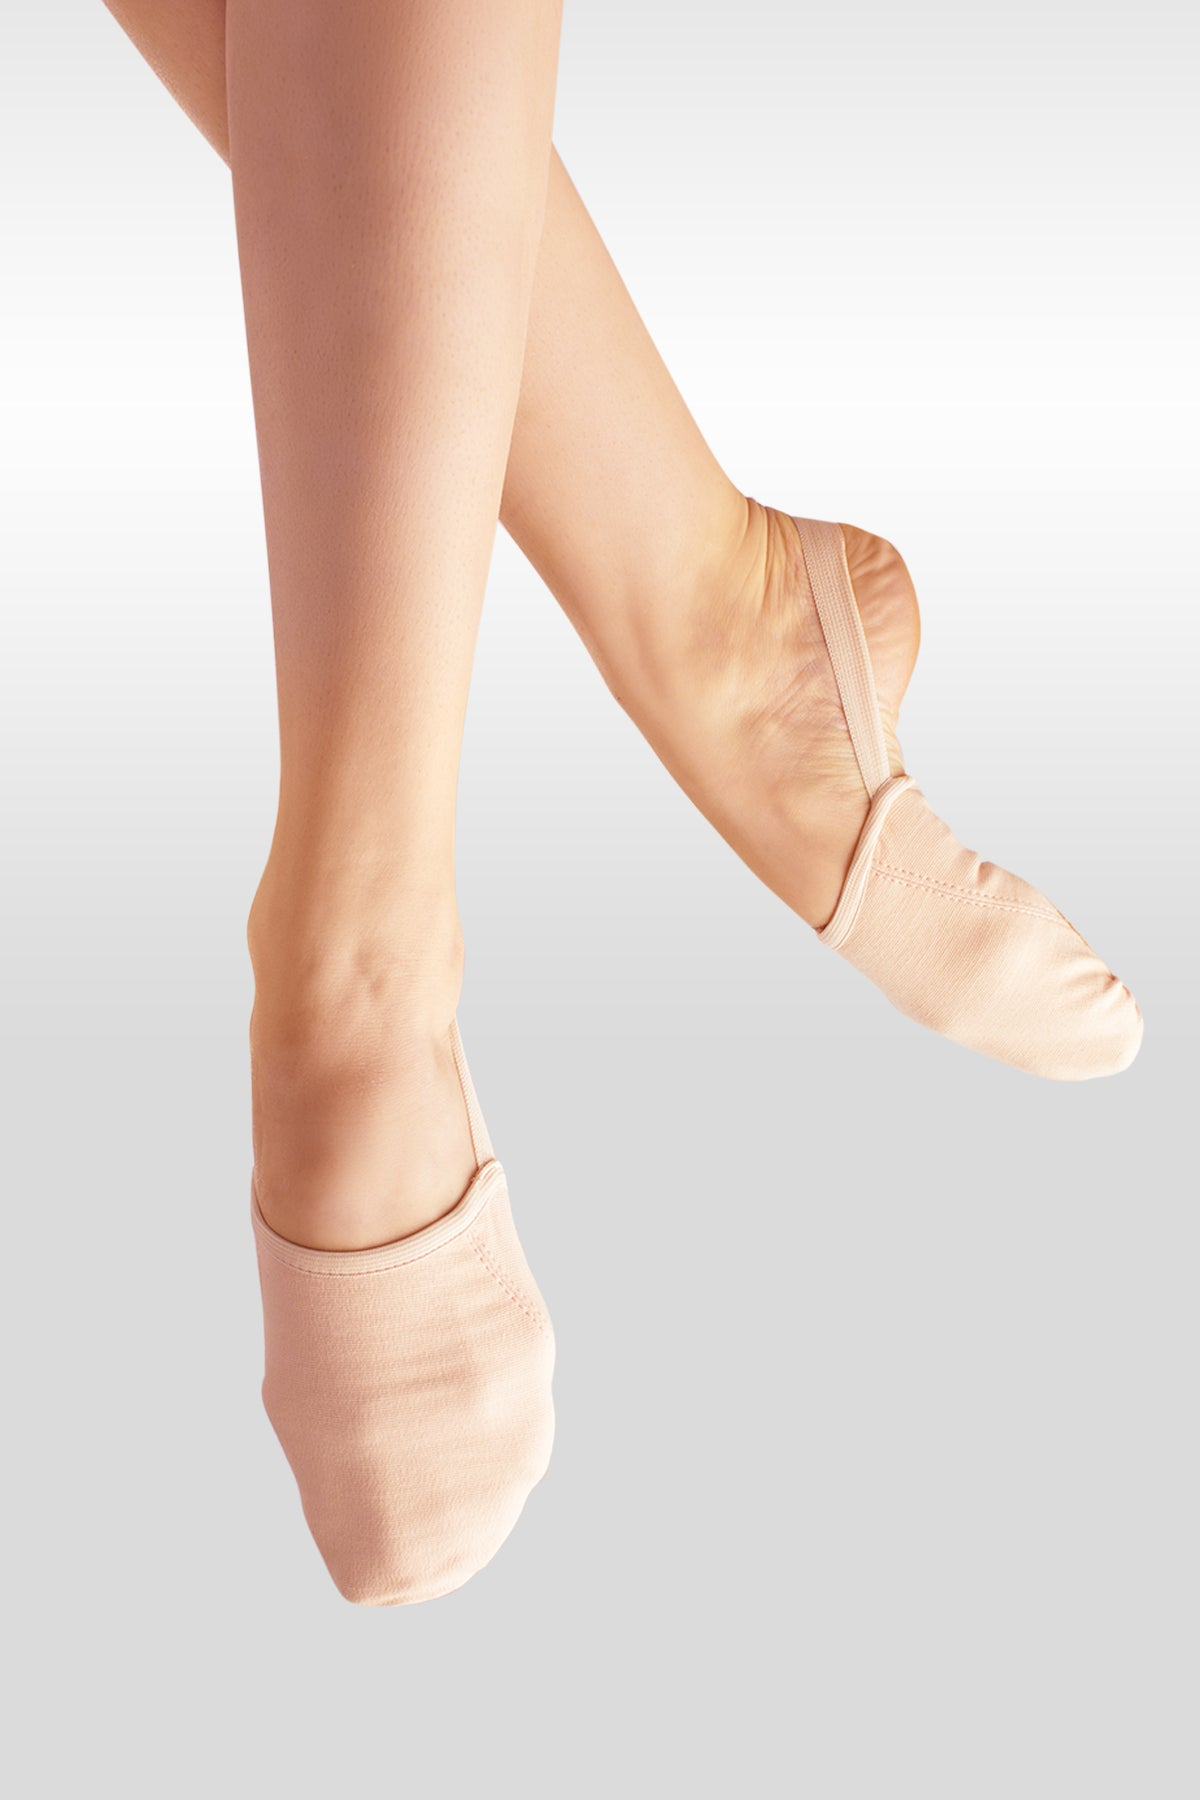 So Danca Stretch Canvas Half-Sole - BA45/Bullet